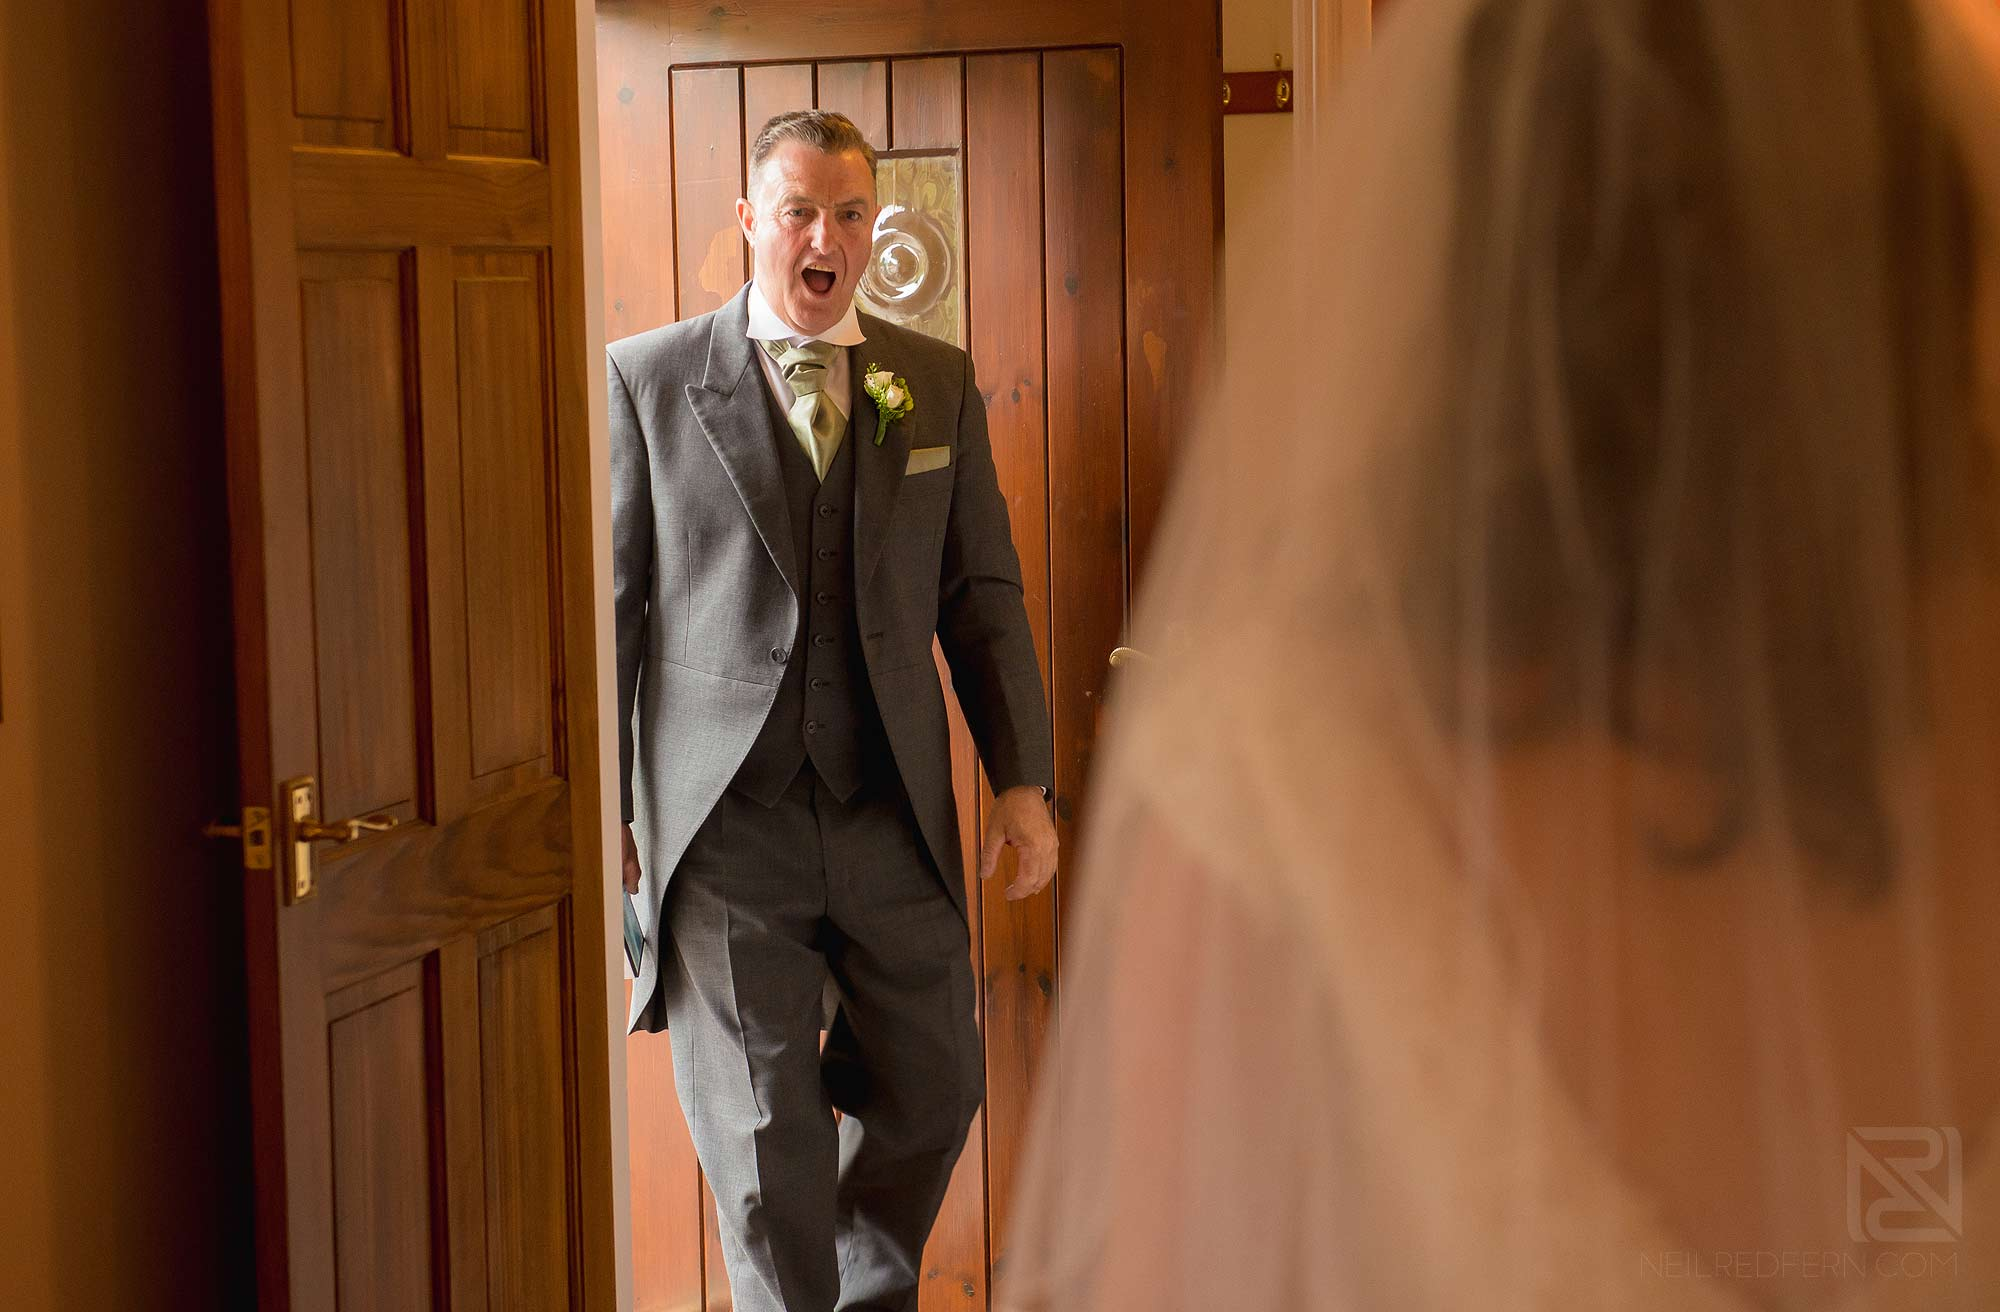 father of bride seeing bride for first time